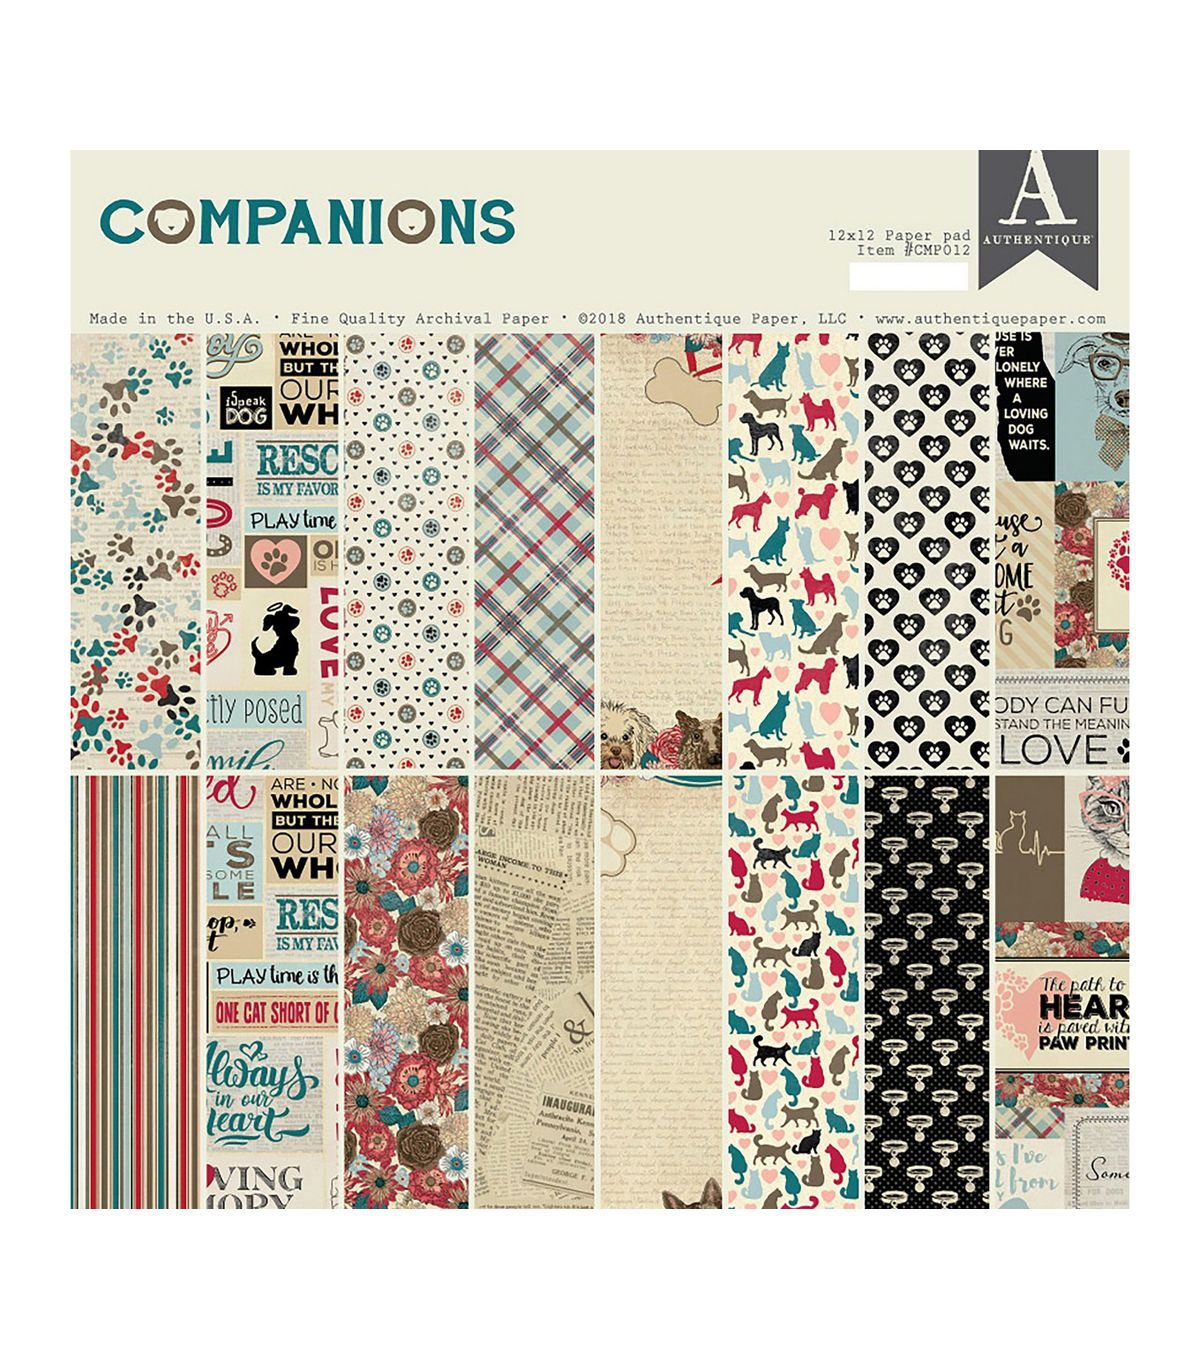 Authentique Double Sided Cardstock Pad 12 X12 24 Pkg Companions With Images Authentique Paper Paper Pads Authentique